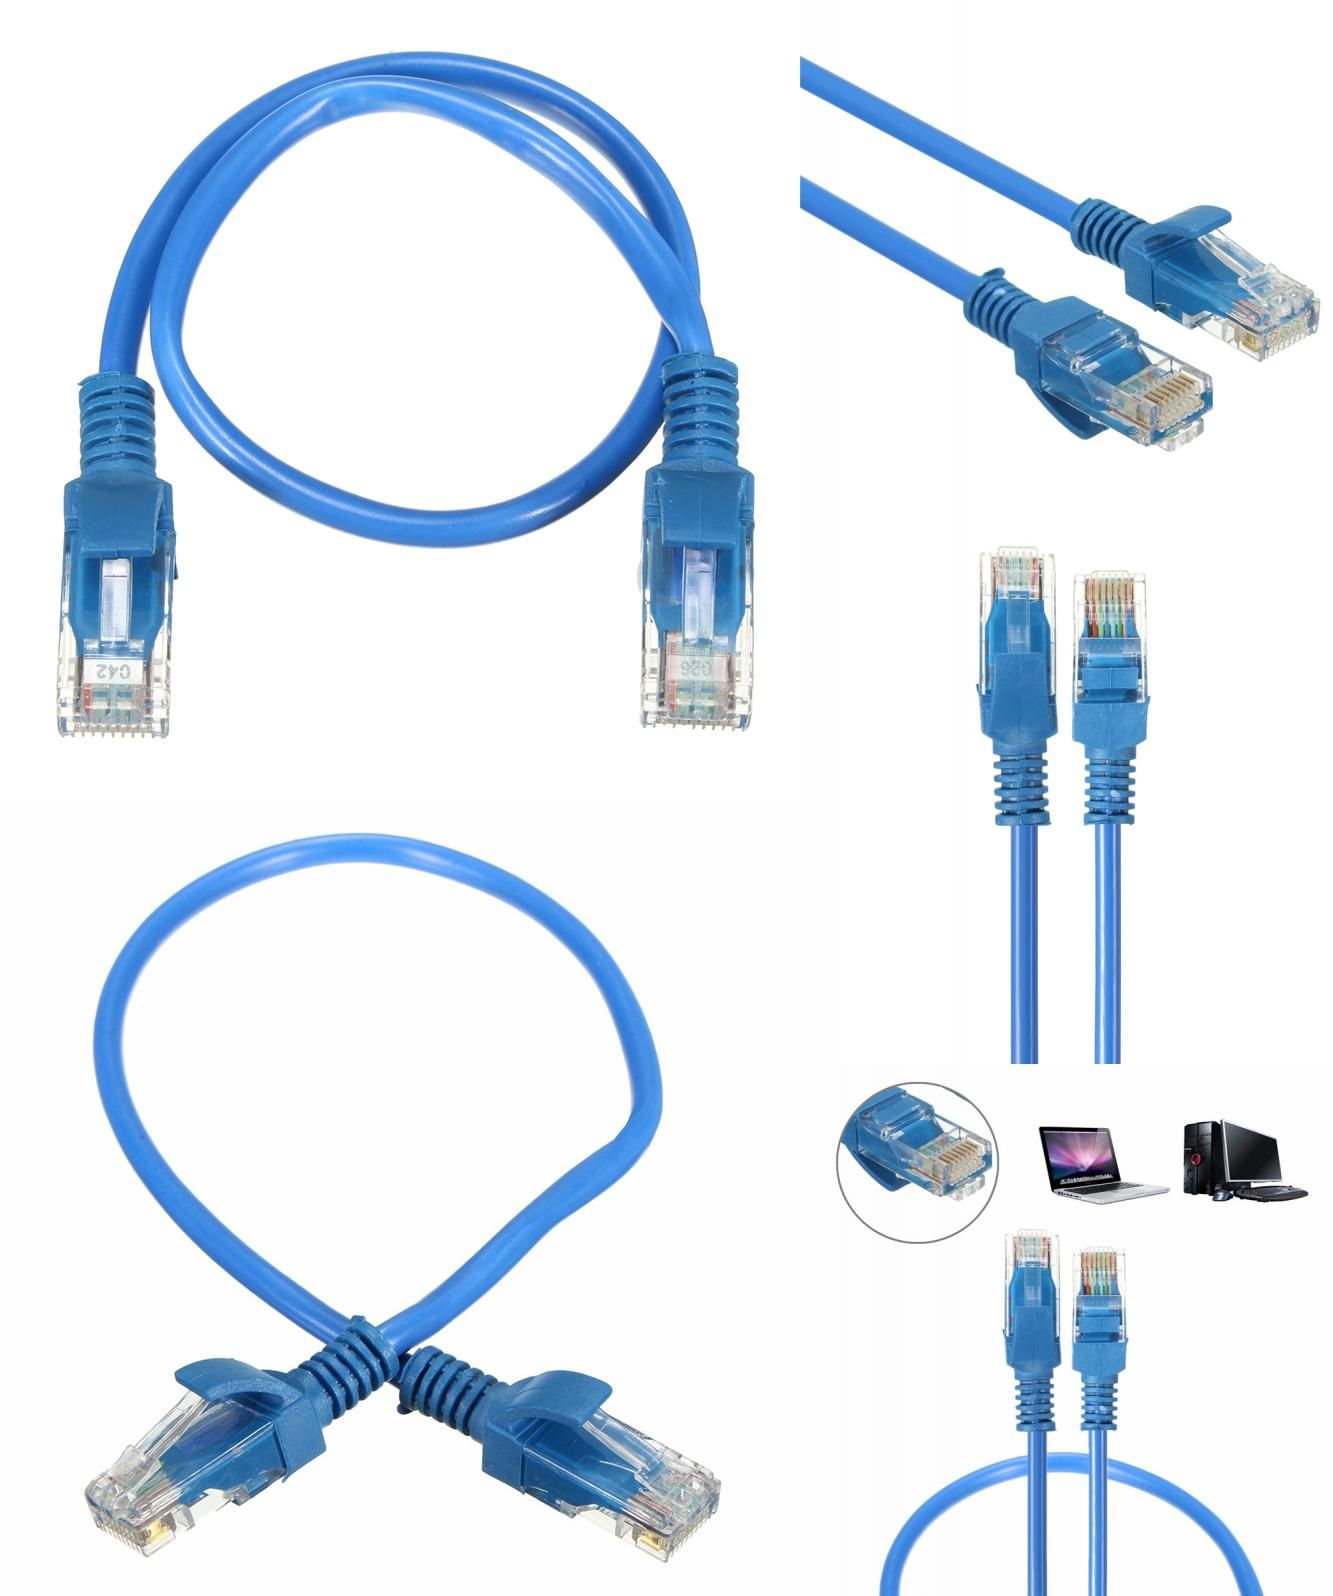 Visit To Buy Hot 5pcs 20cm Rj45 Cat 5 M Cable Male Internet Wiring